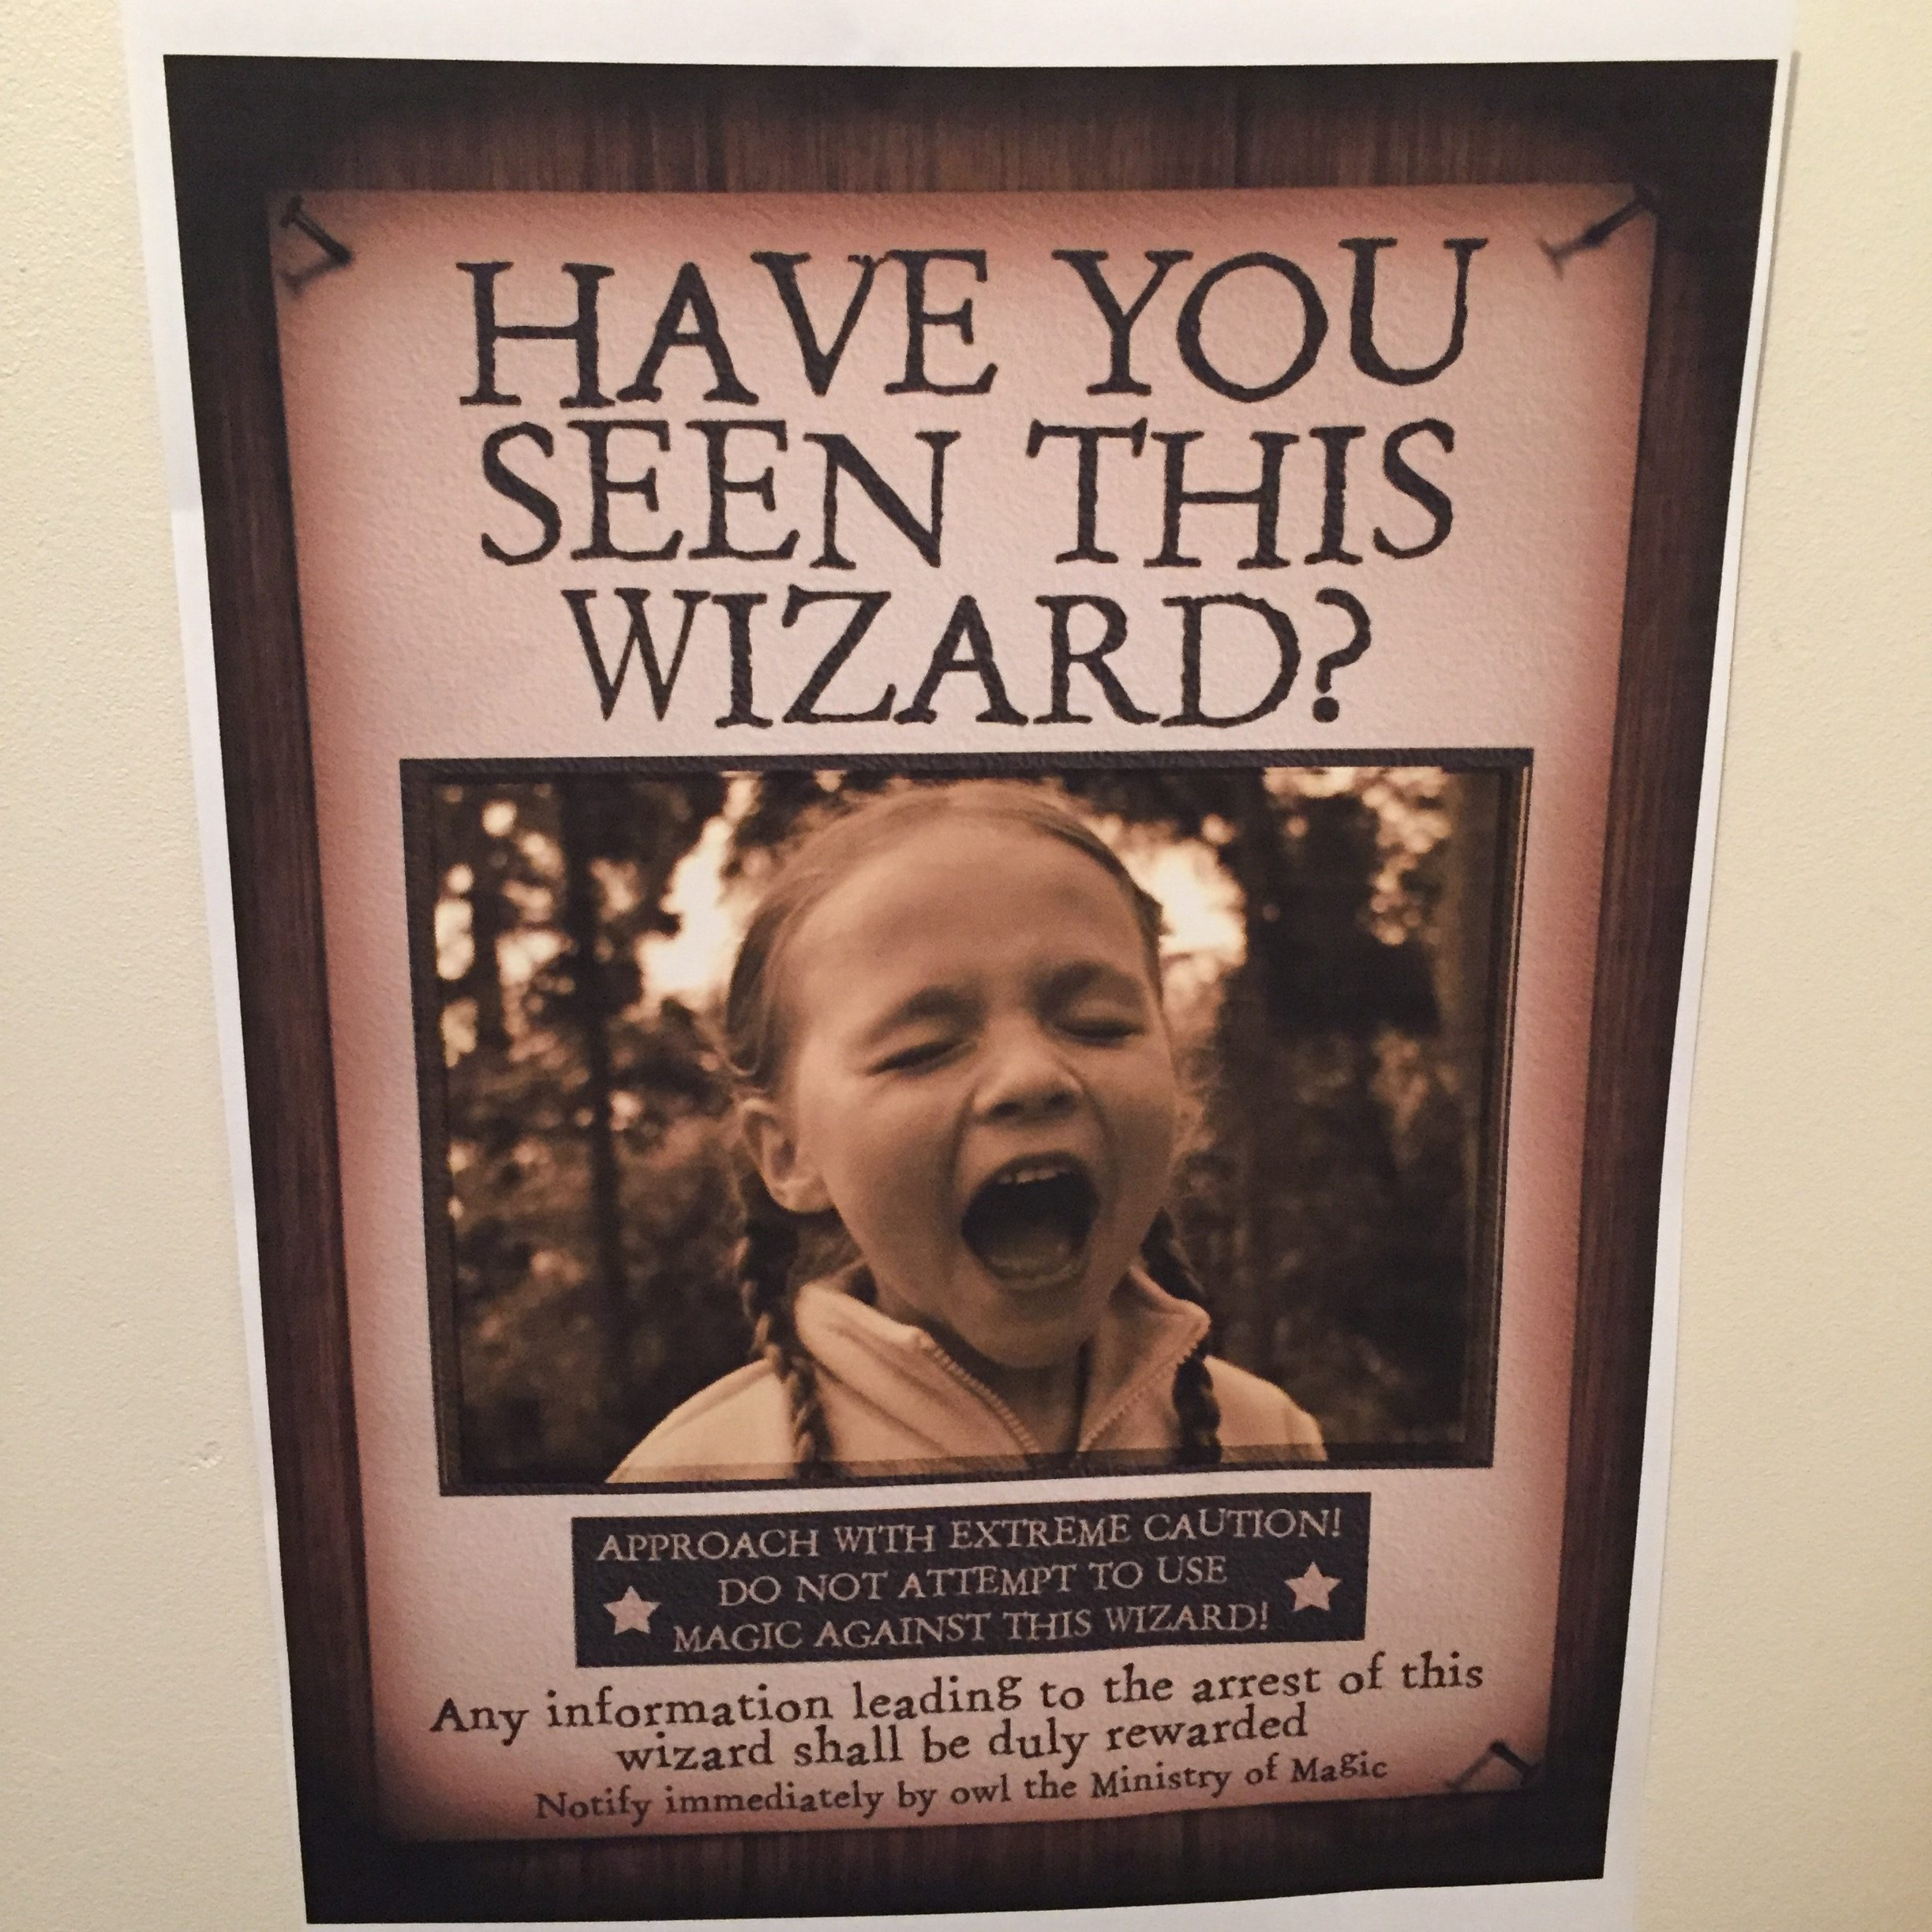 Harry Potter Printables   Here Come The Girls - Free Printable Harry Potter Posters